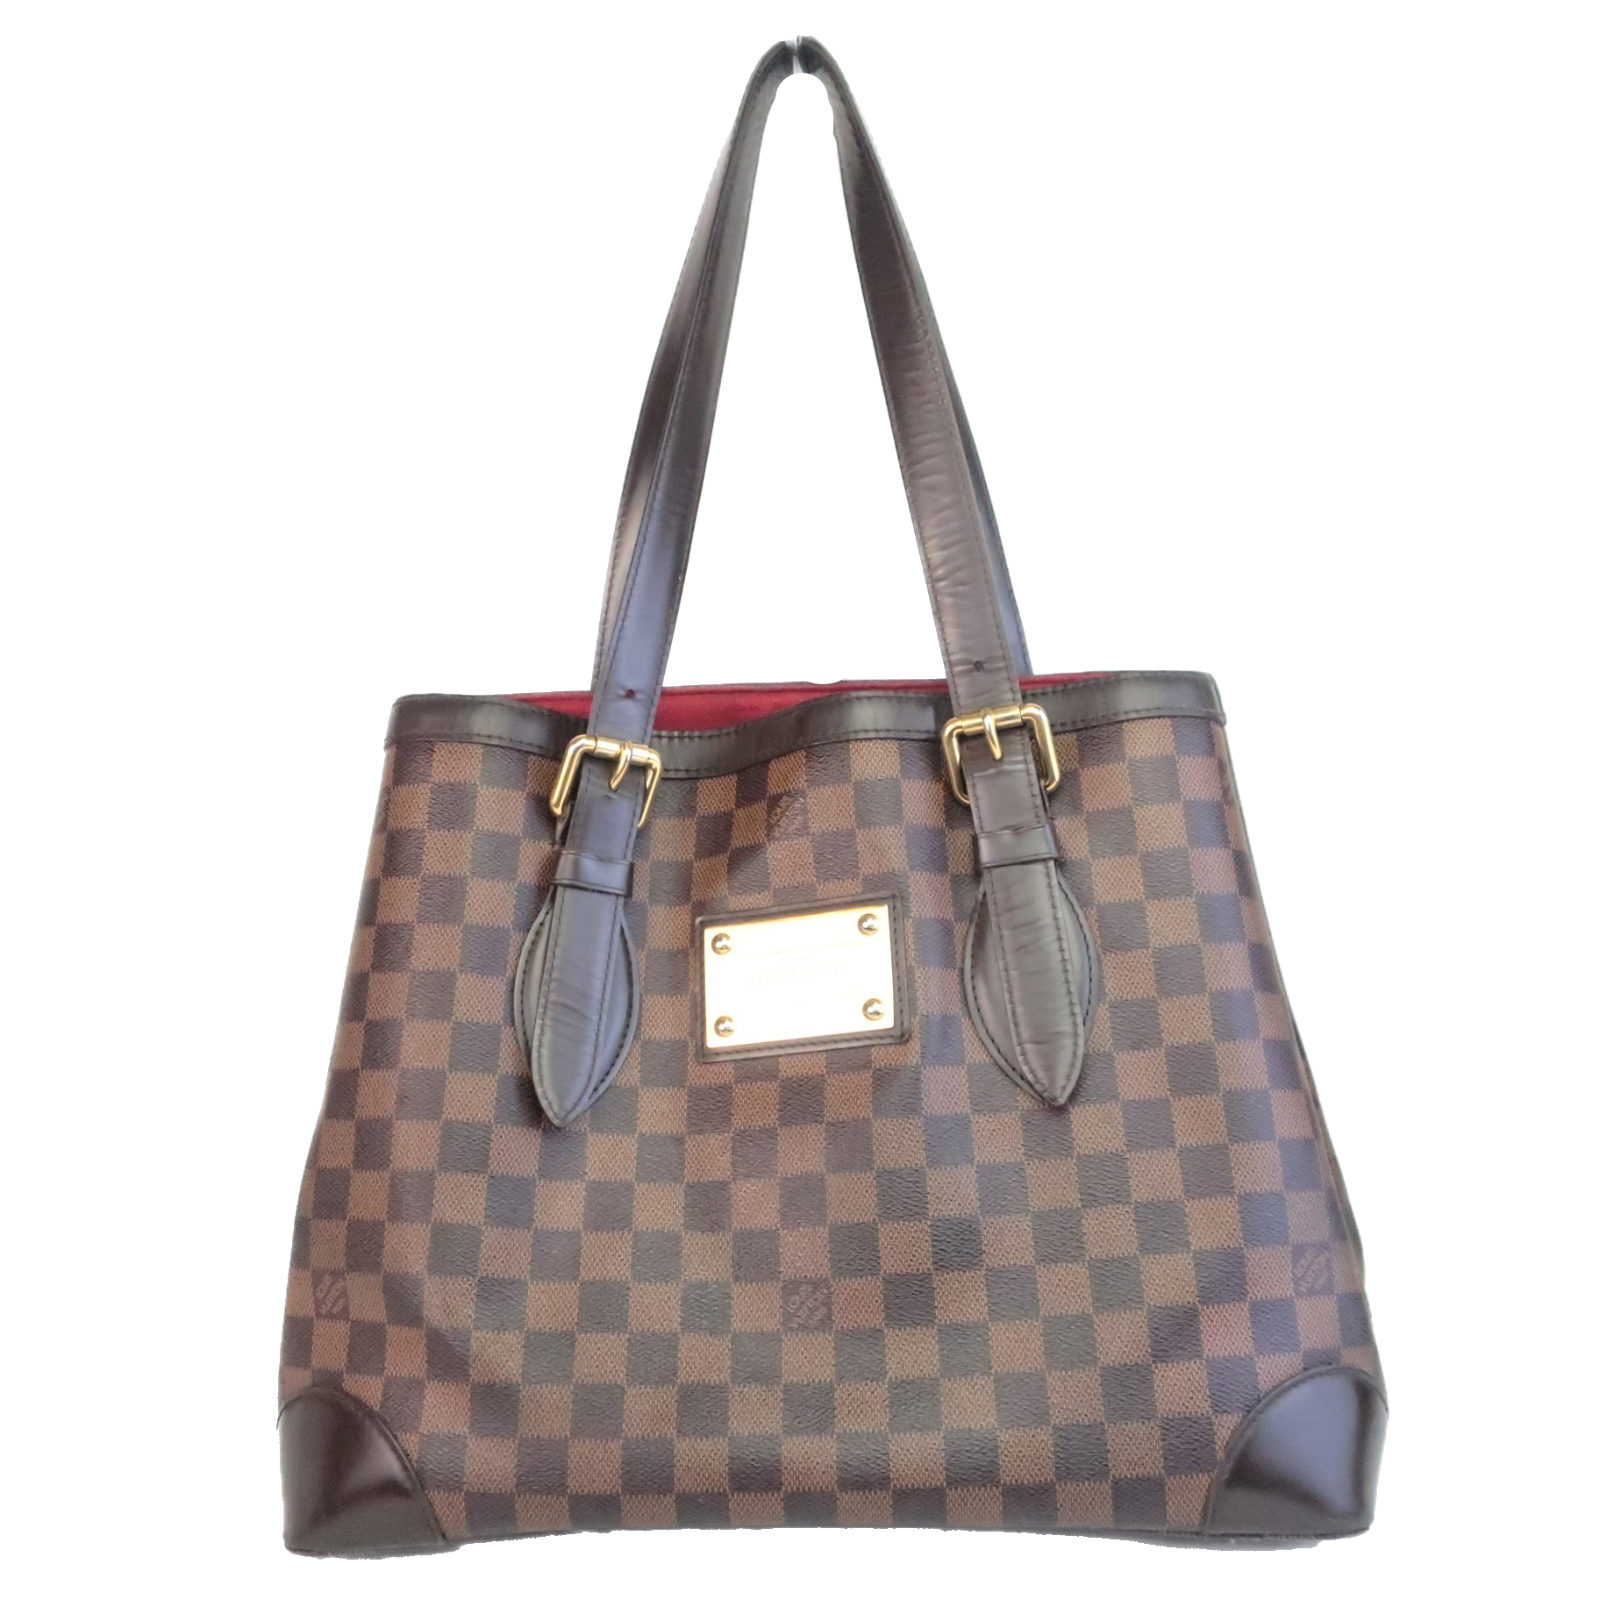 Primary image for Louis Vuitton Damier Ebene Hampstead MM Shoulder bag